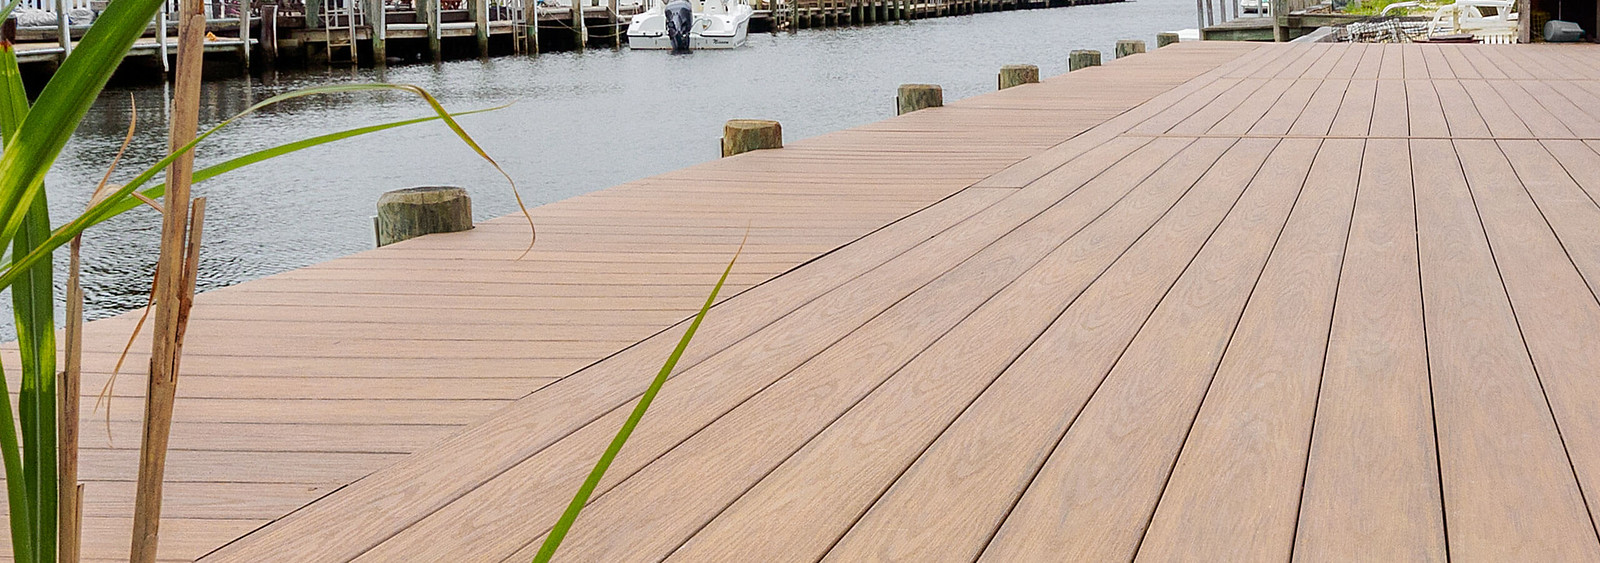 Serenity PVC Decking Near Water